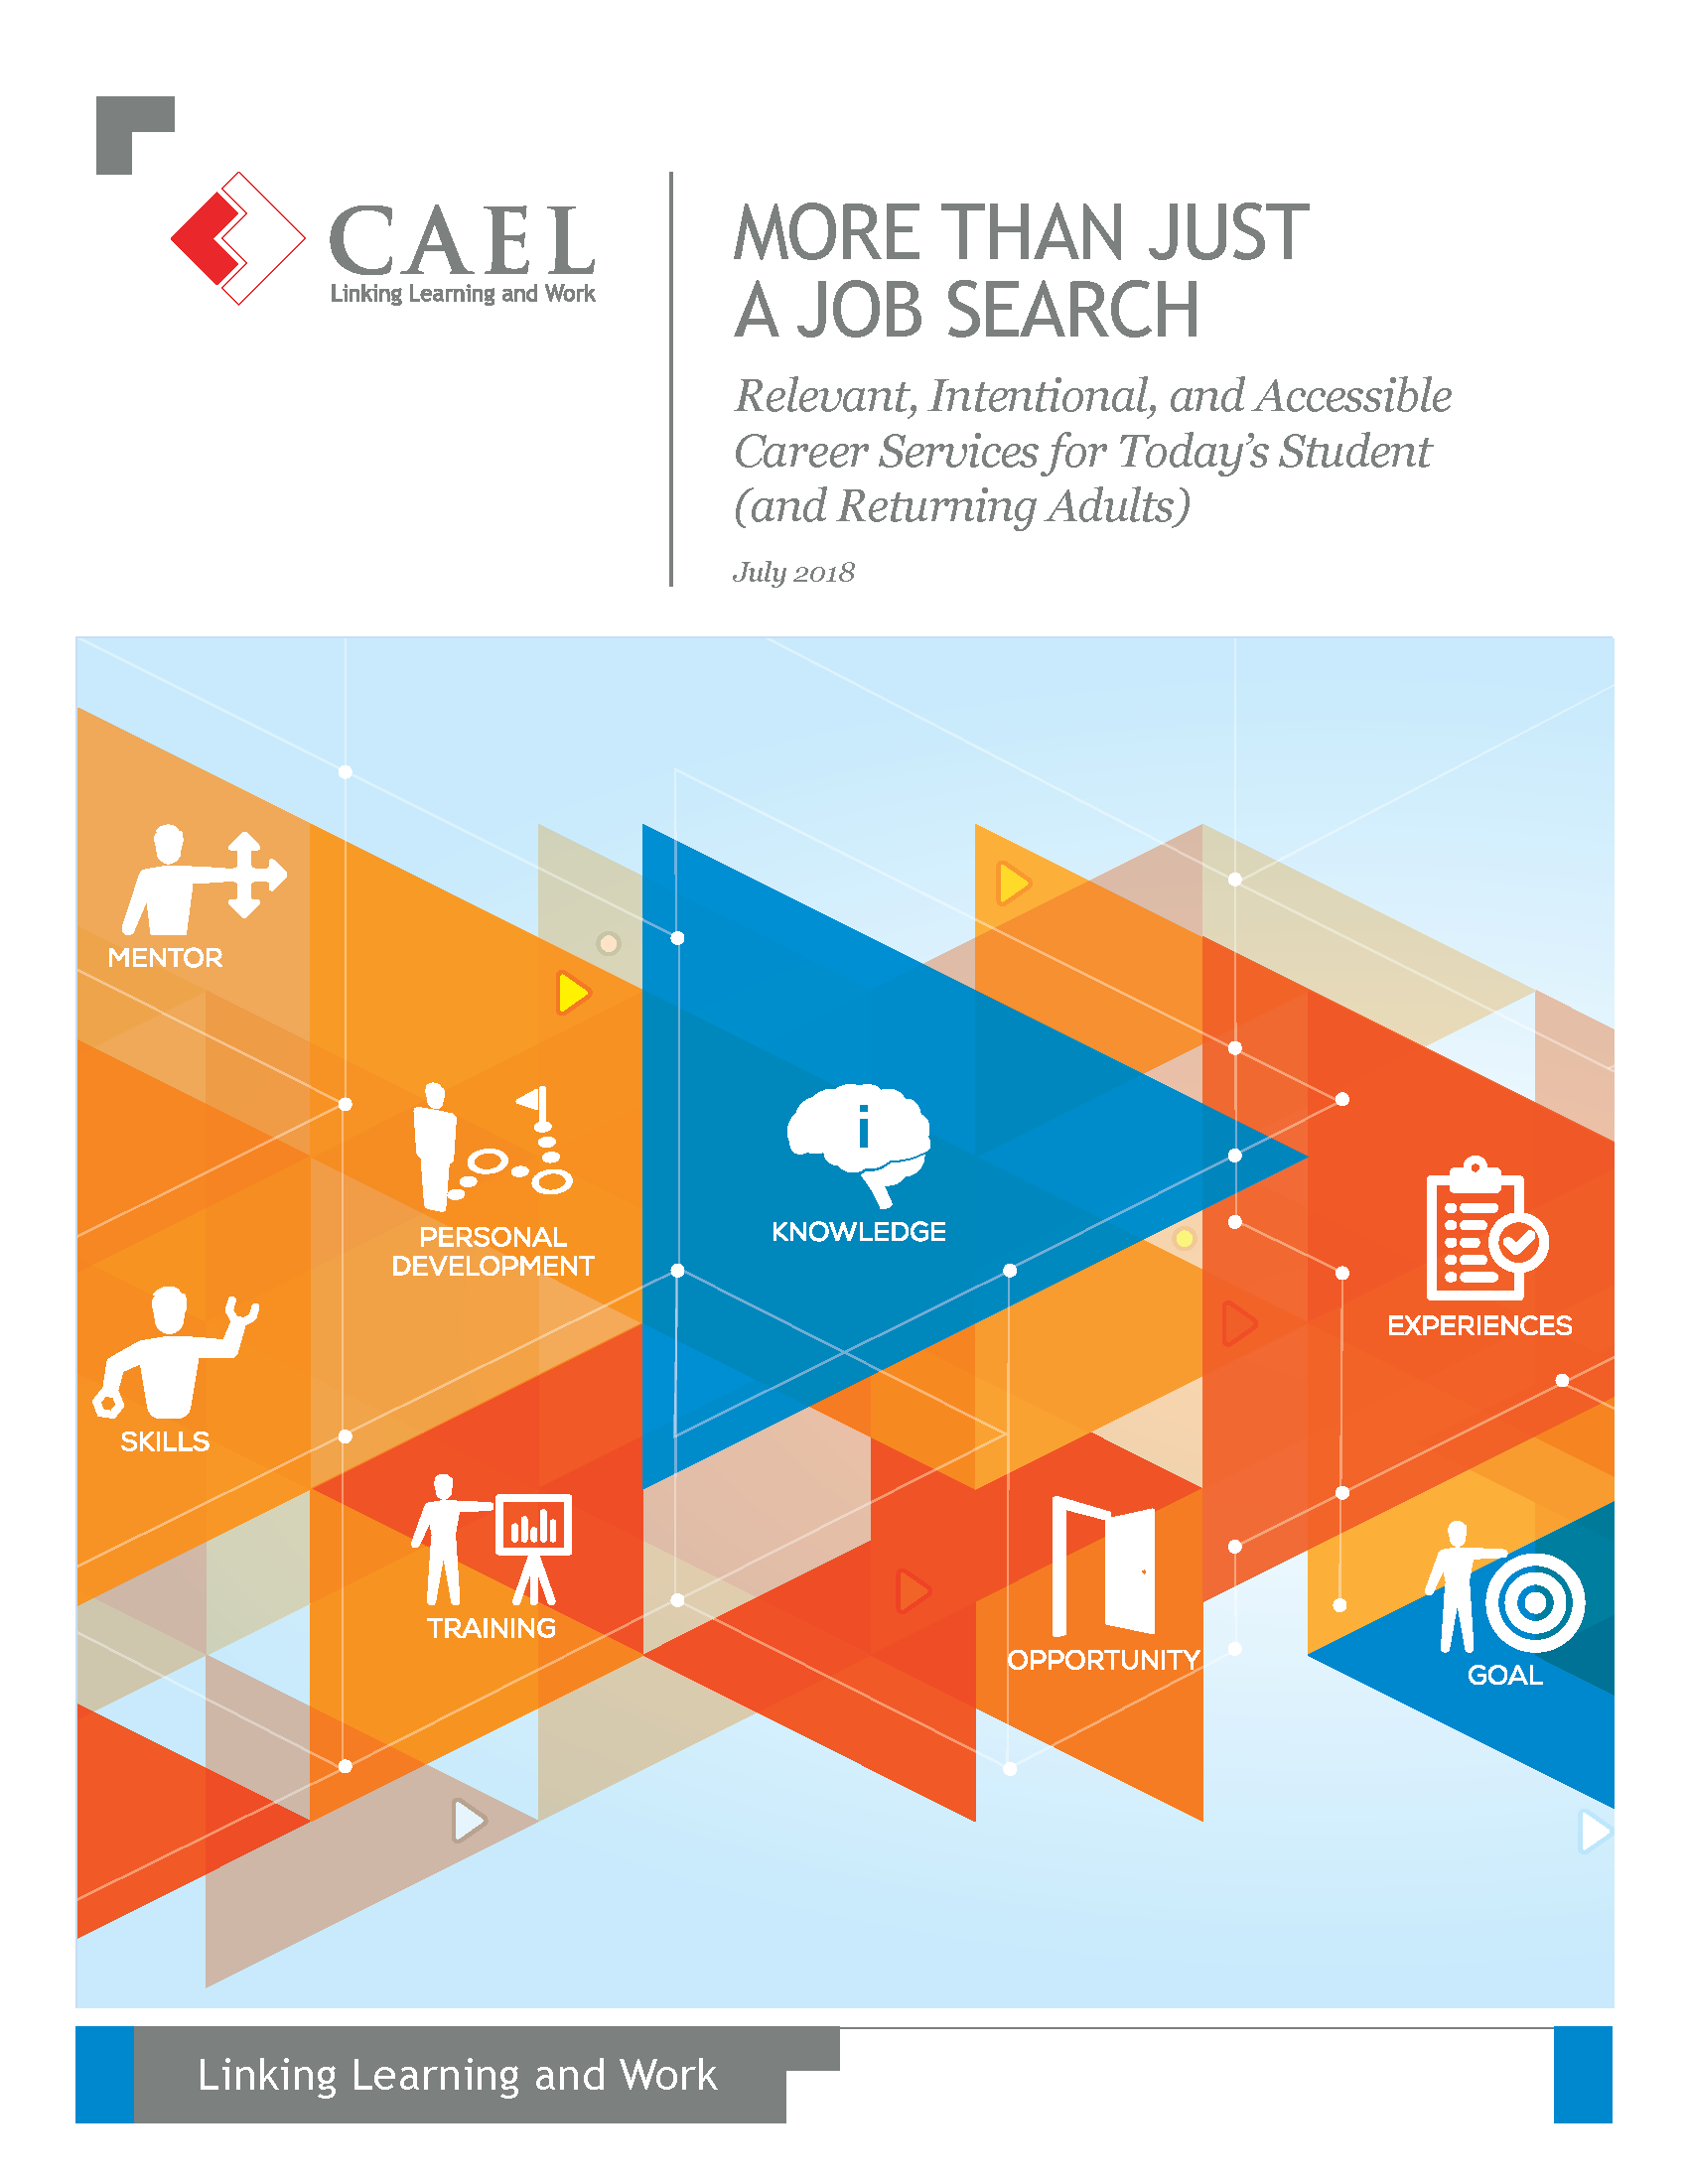 more than just a job search - relevant, intentional and accessible career services for today's adult student